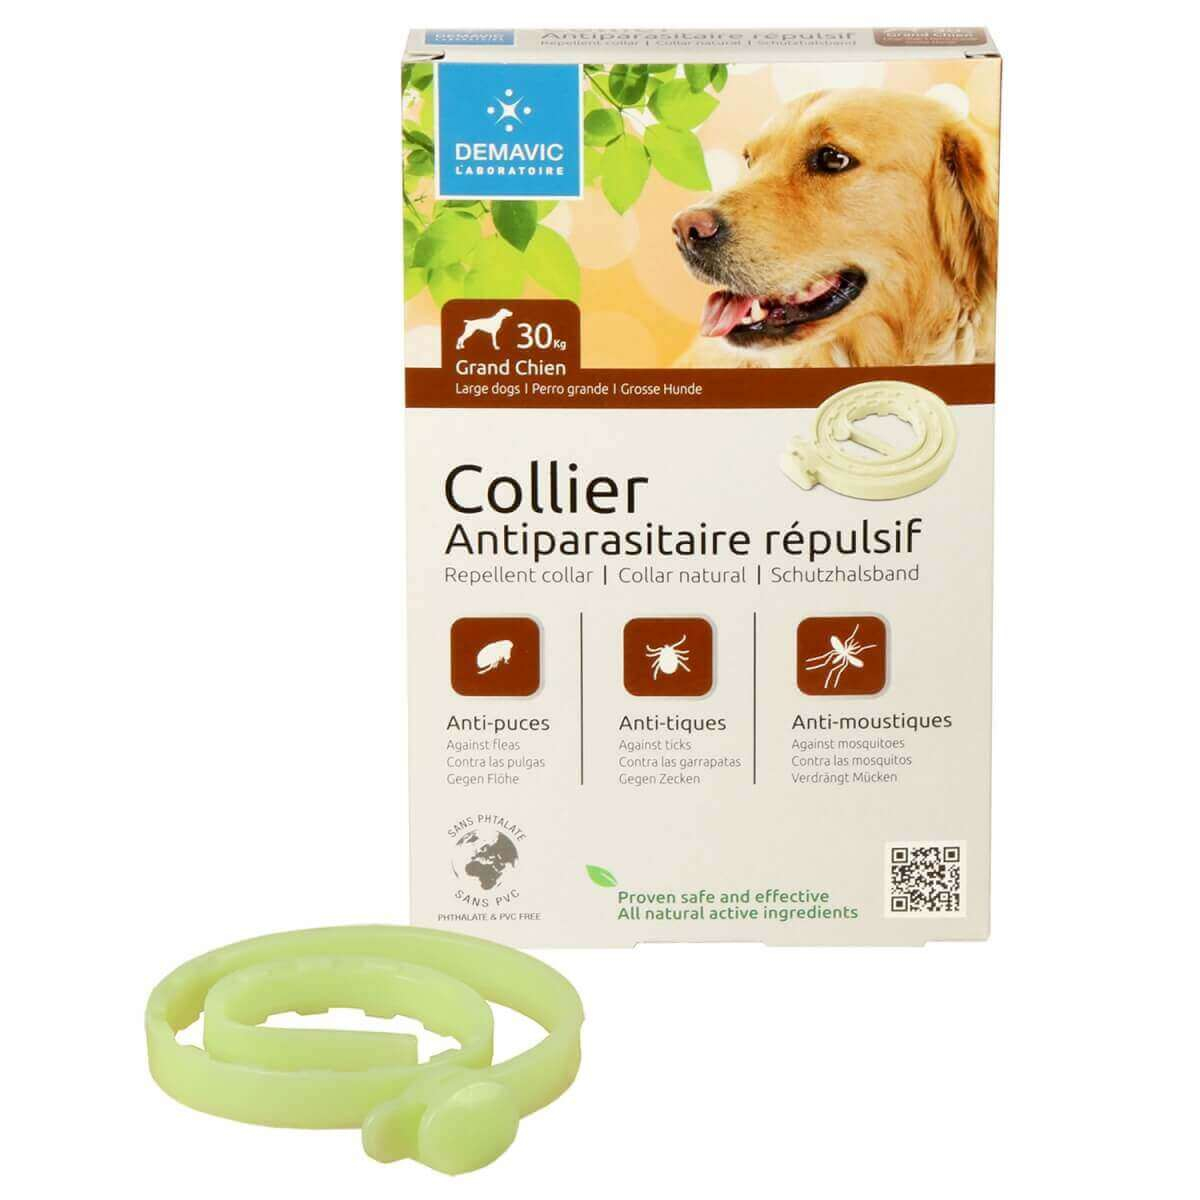 collier insectifuge pour chien collier anti parasites. Black Bedroom Furniture Sets. Home Design Ideas